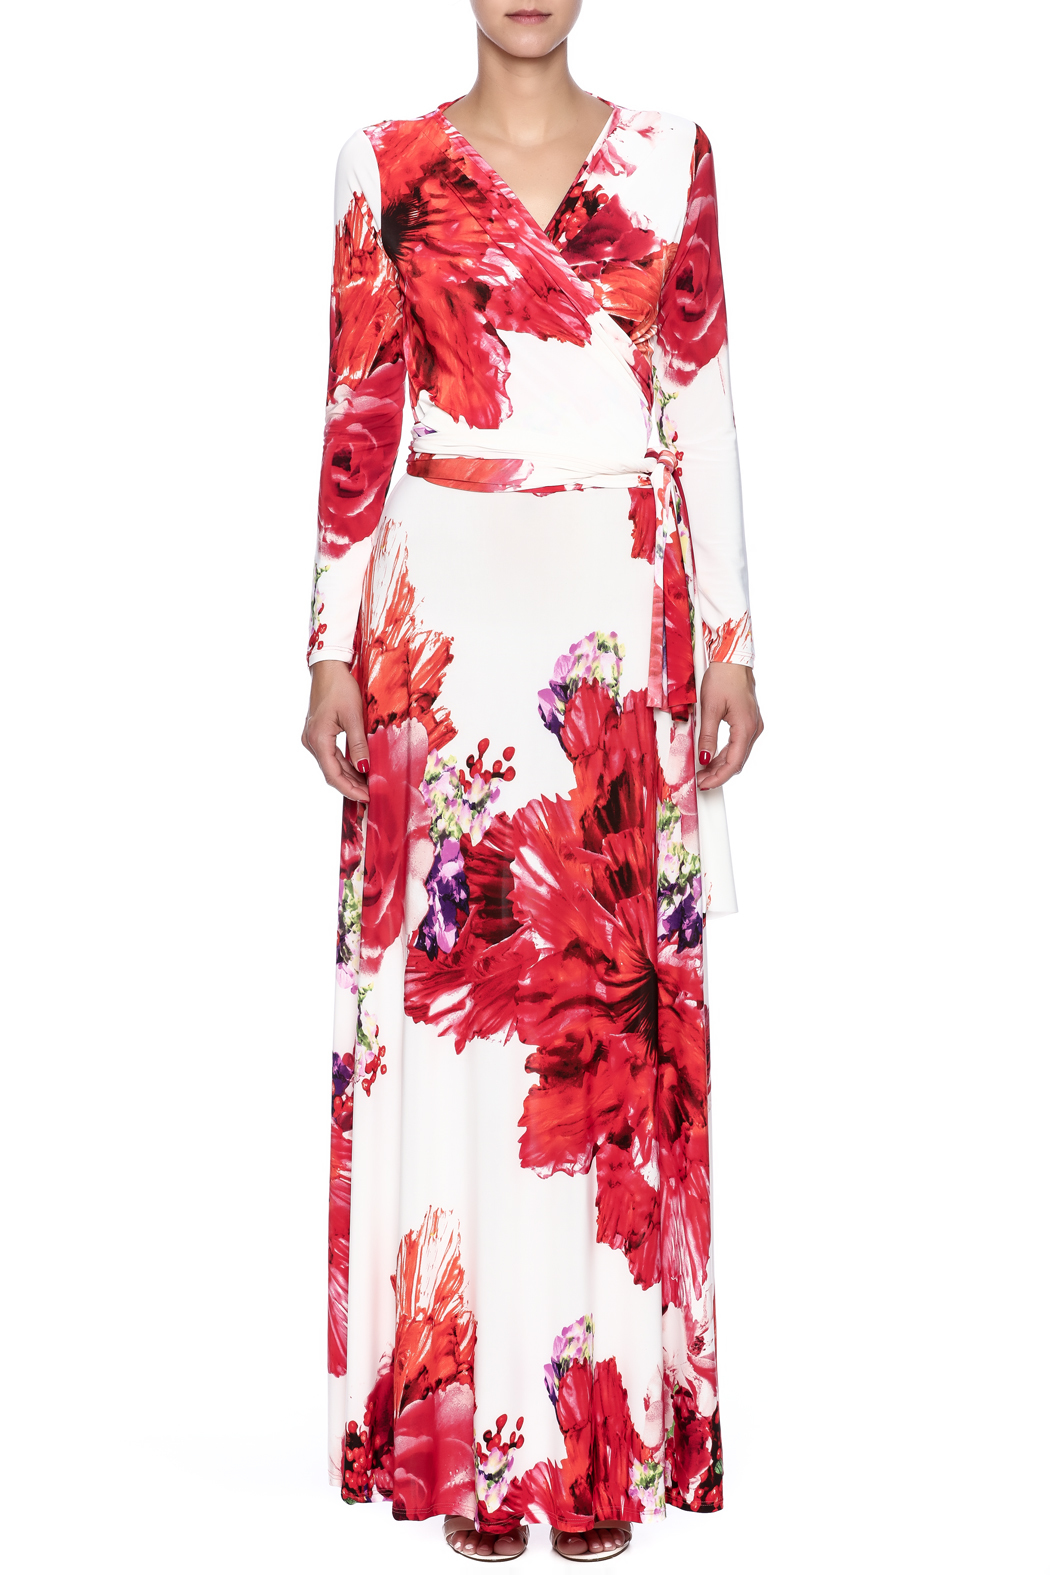 457780704b ducci Floral Wrap Dress from New Jersey by SHE Boutique — Shoptiques